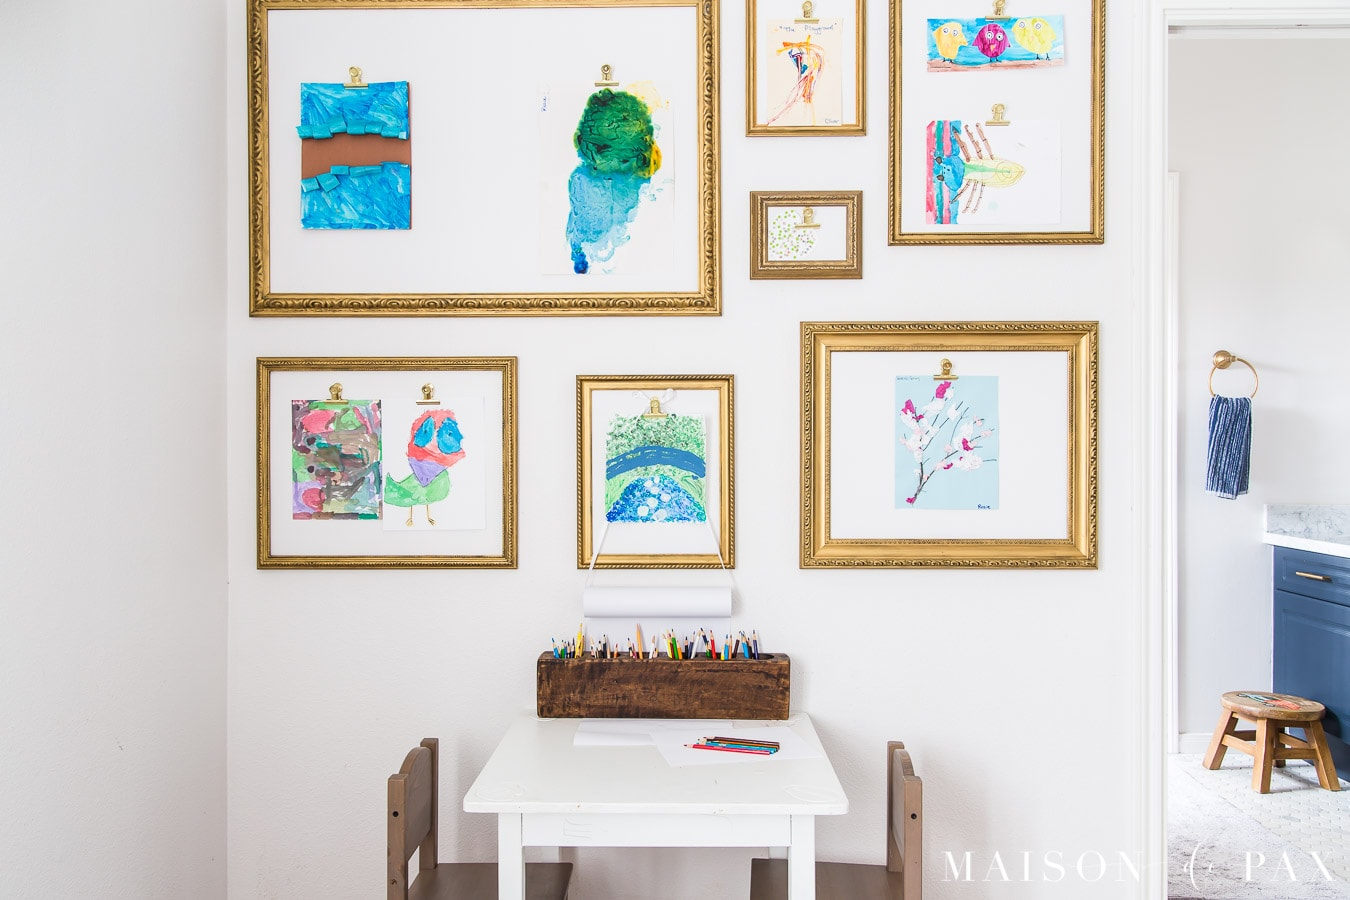 gold frames with clips to display kids' artwork | Maison de Pax